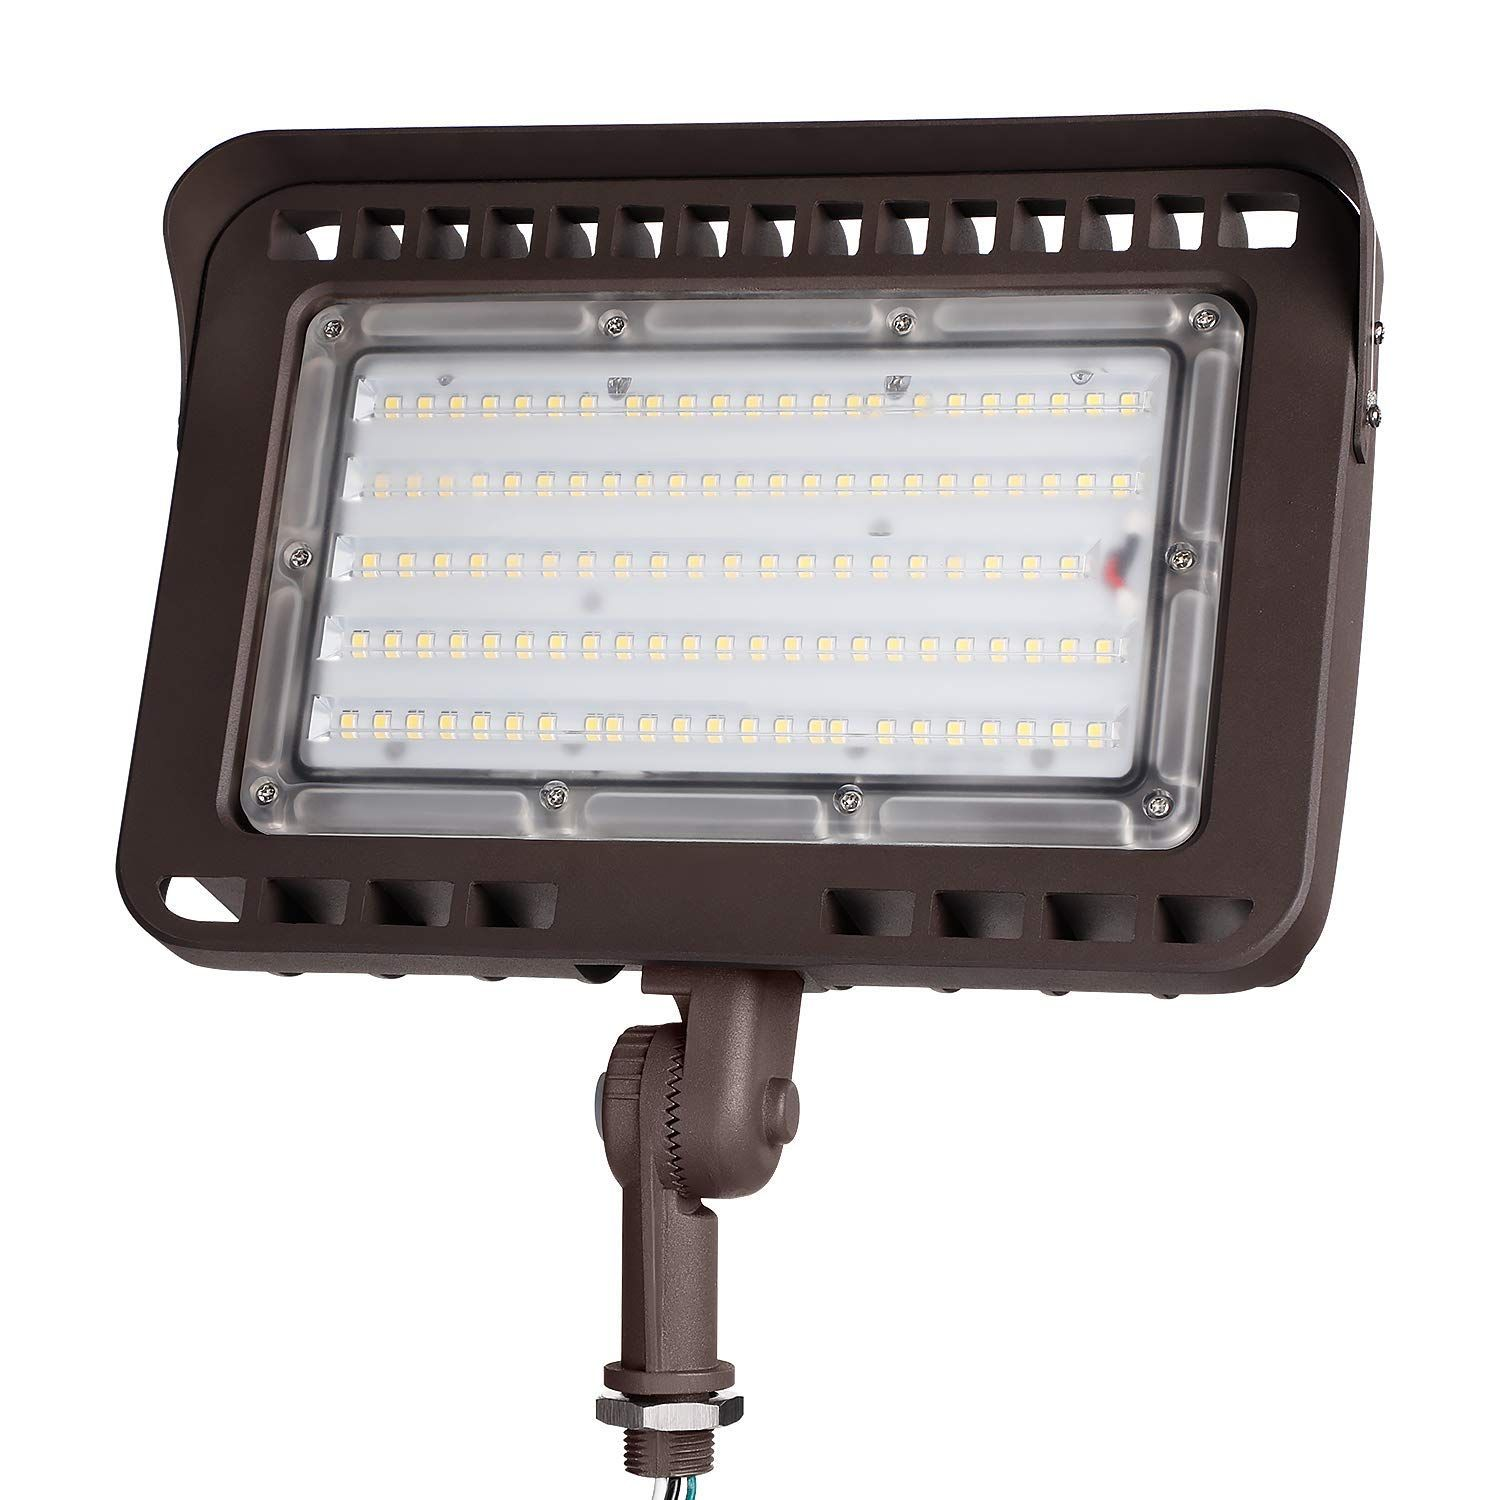 Leonlite 100w Led Outdoor Flood Light With Knuckle Mount 11 000lm Super Bright Wall Washer Security Outdoor Flood Lights Led Outdoor Flood Lights Flood Lights